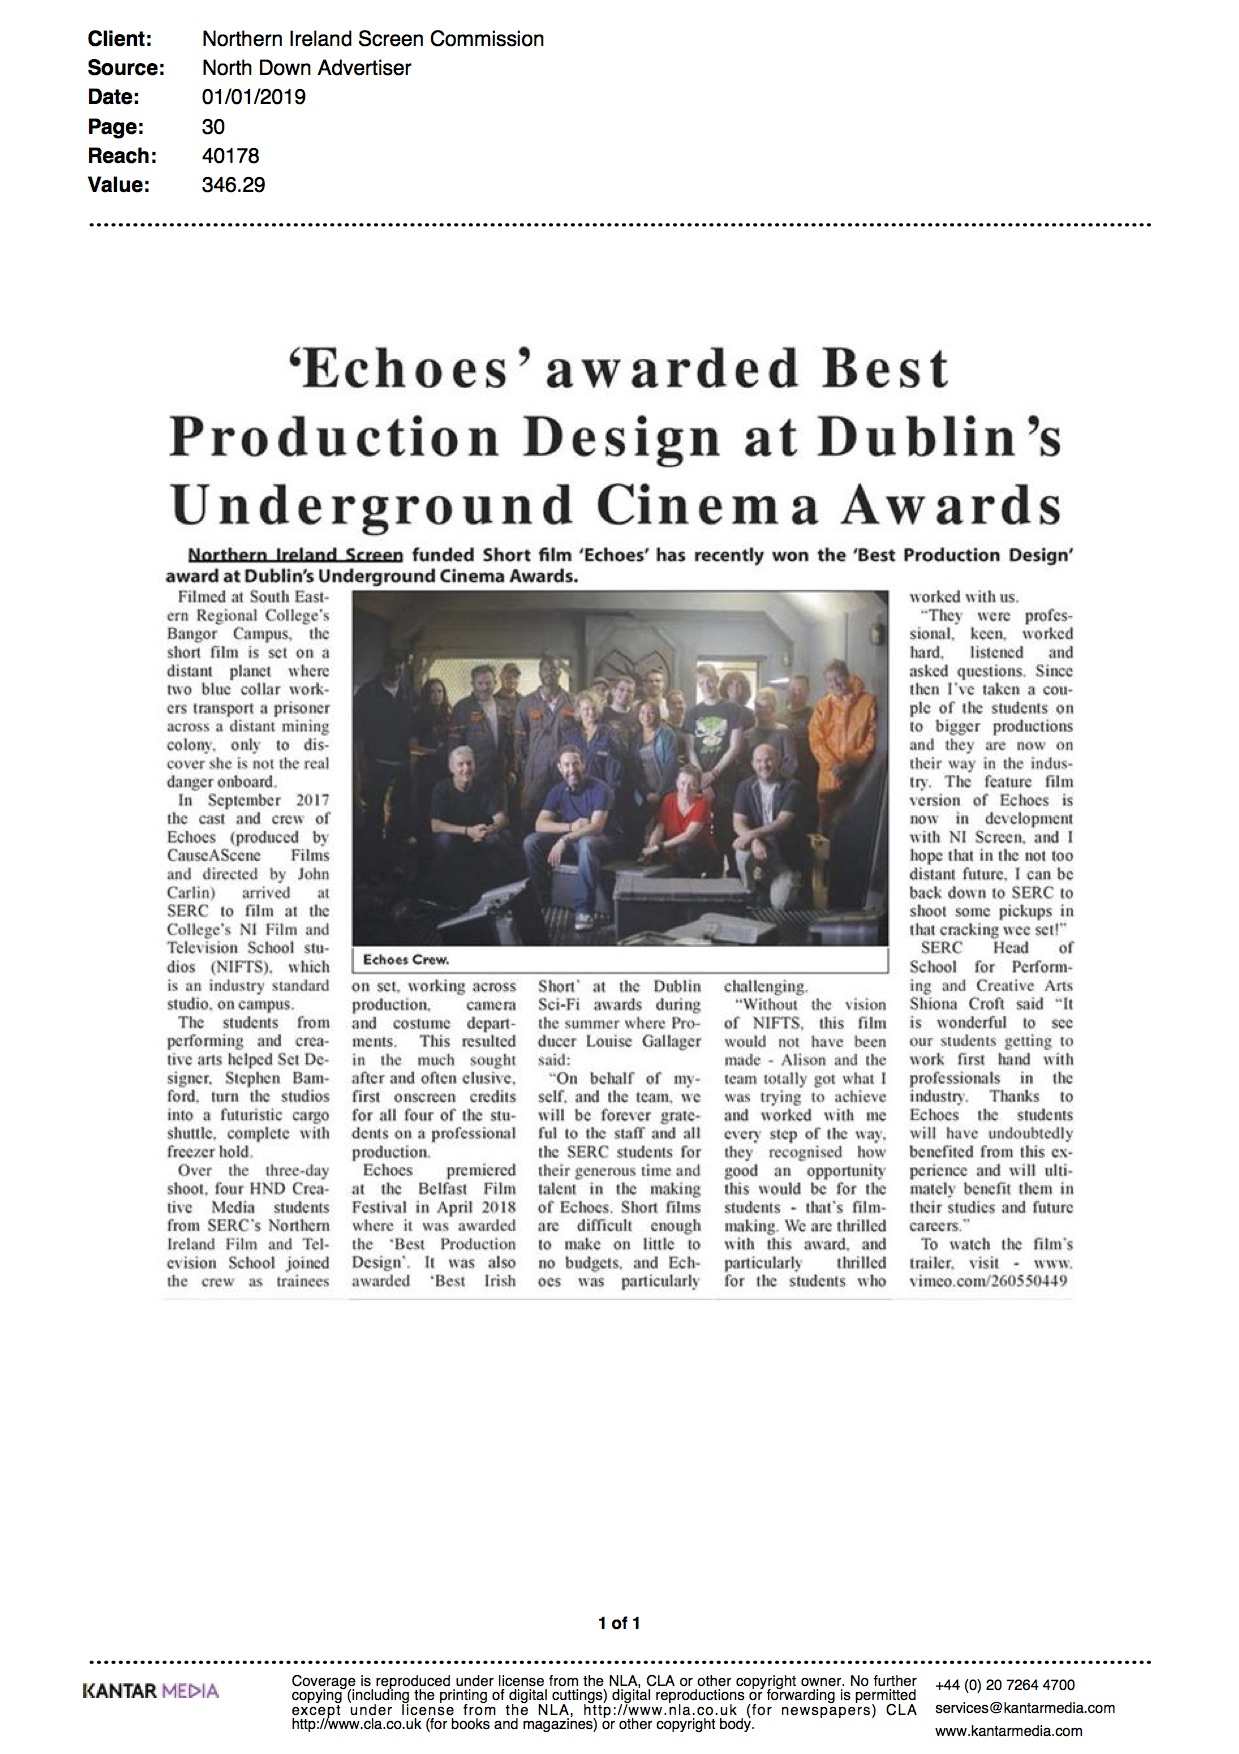 Award For Echoes Film